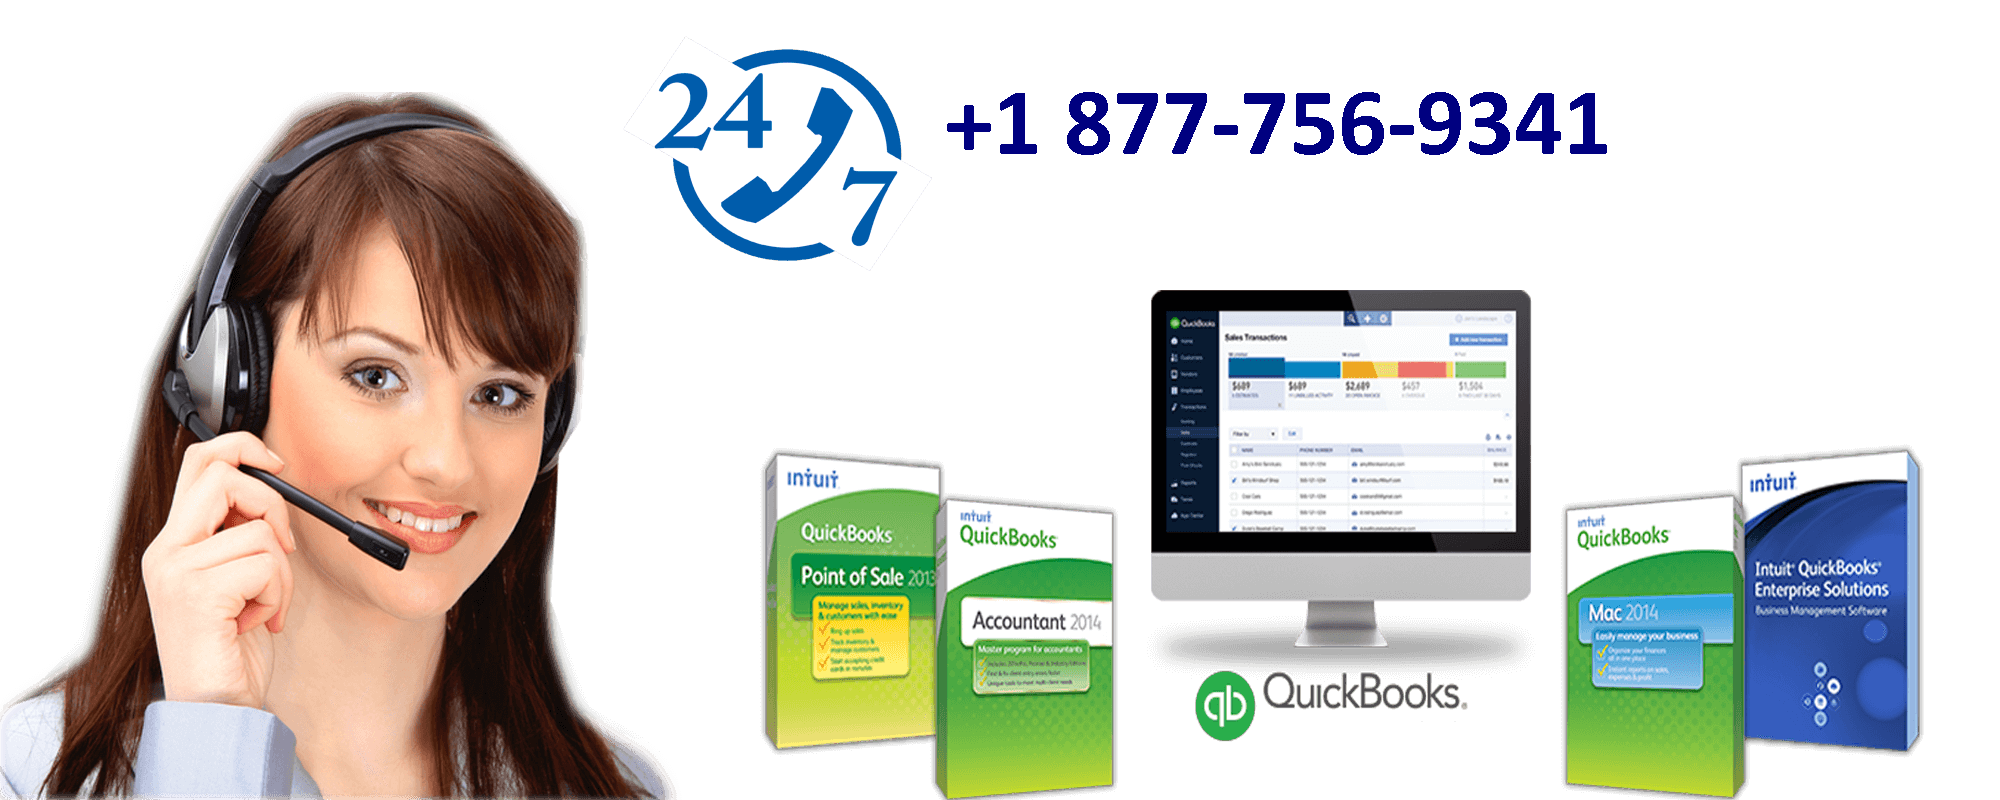 Pin by quickBooks tollfree on Quickbooks support number